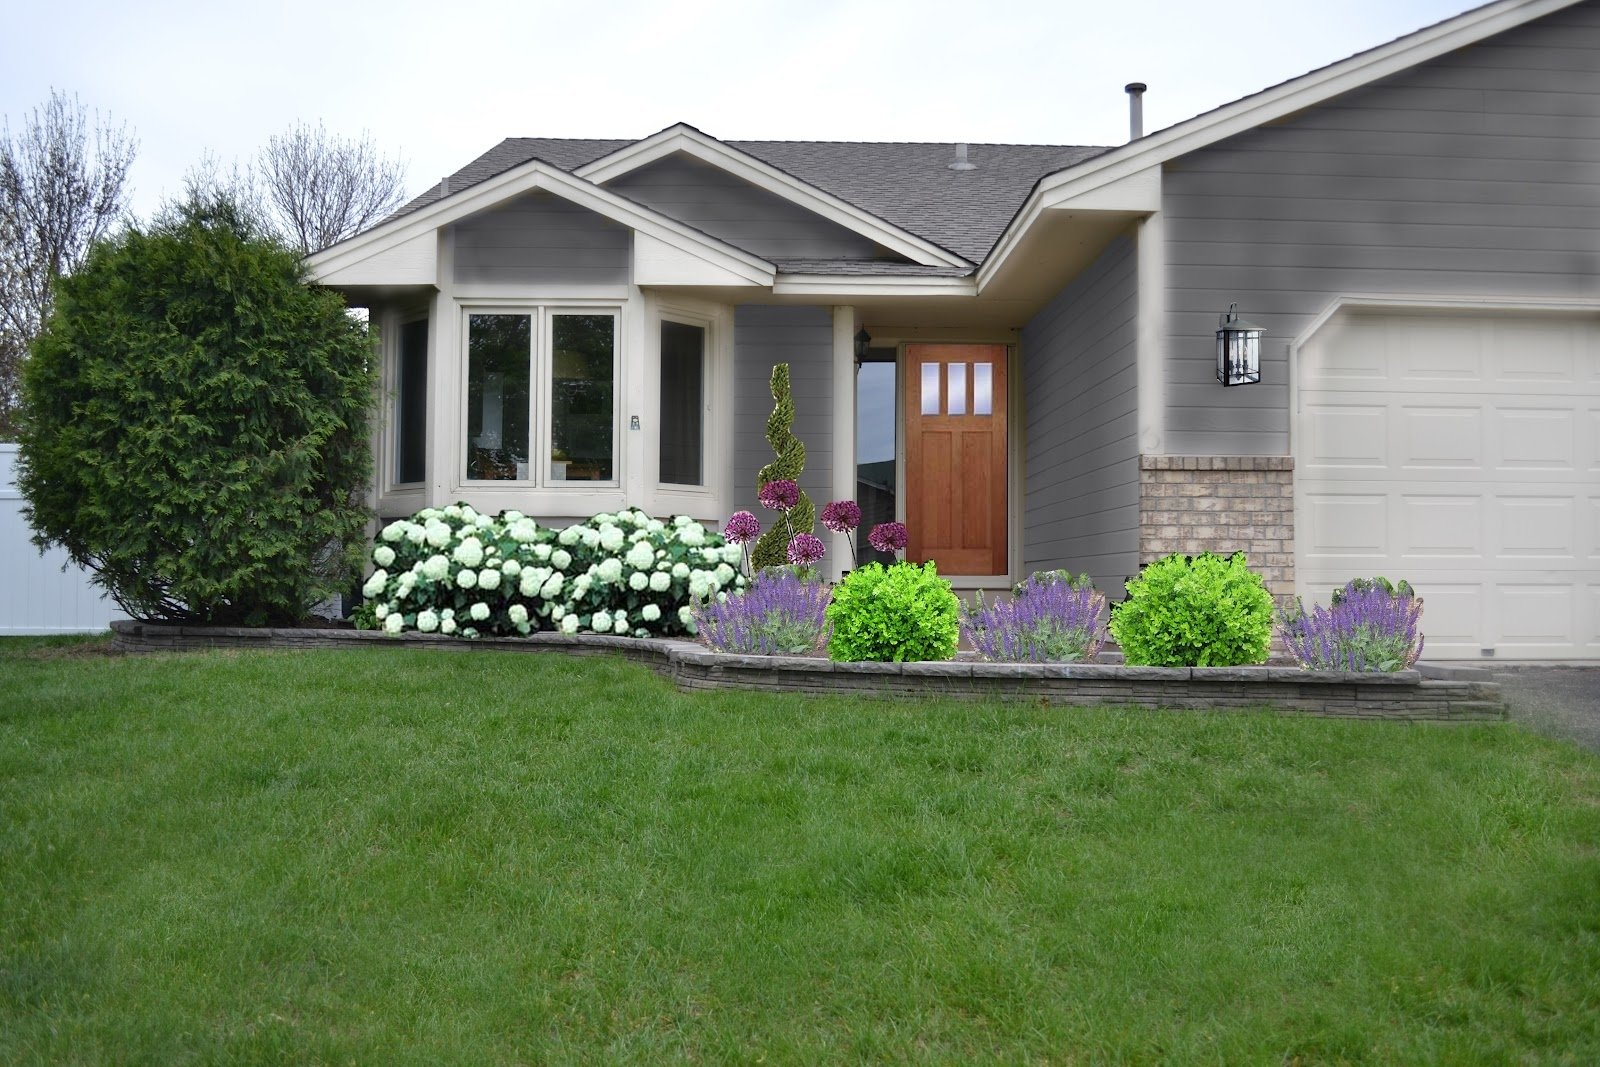 10 Great Landscaping Ideas For Front Of House front yard front yard simple landscaping ideas for of house design